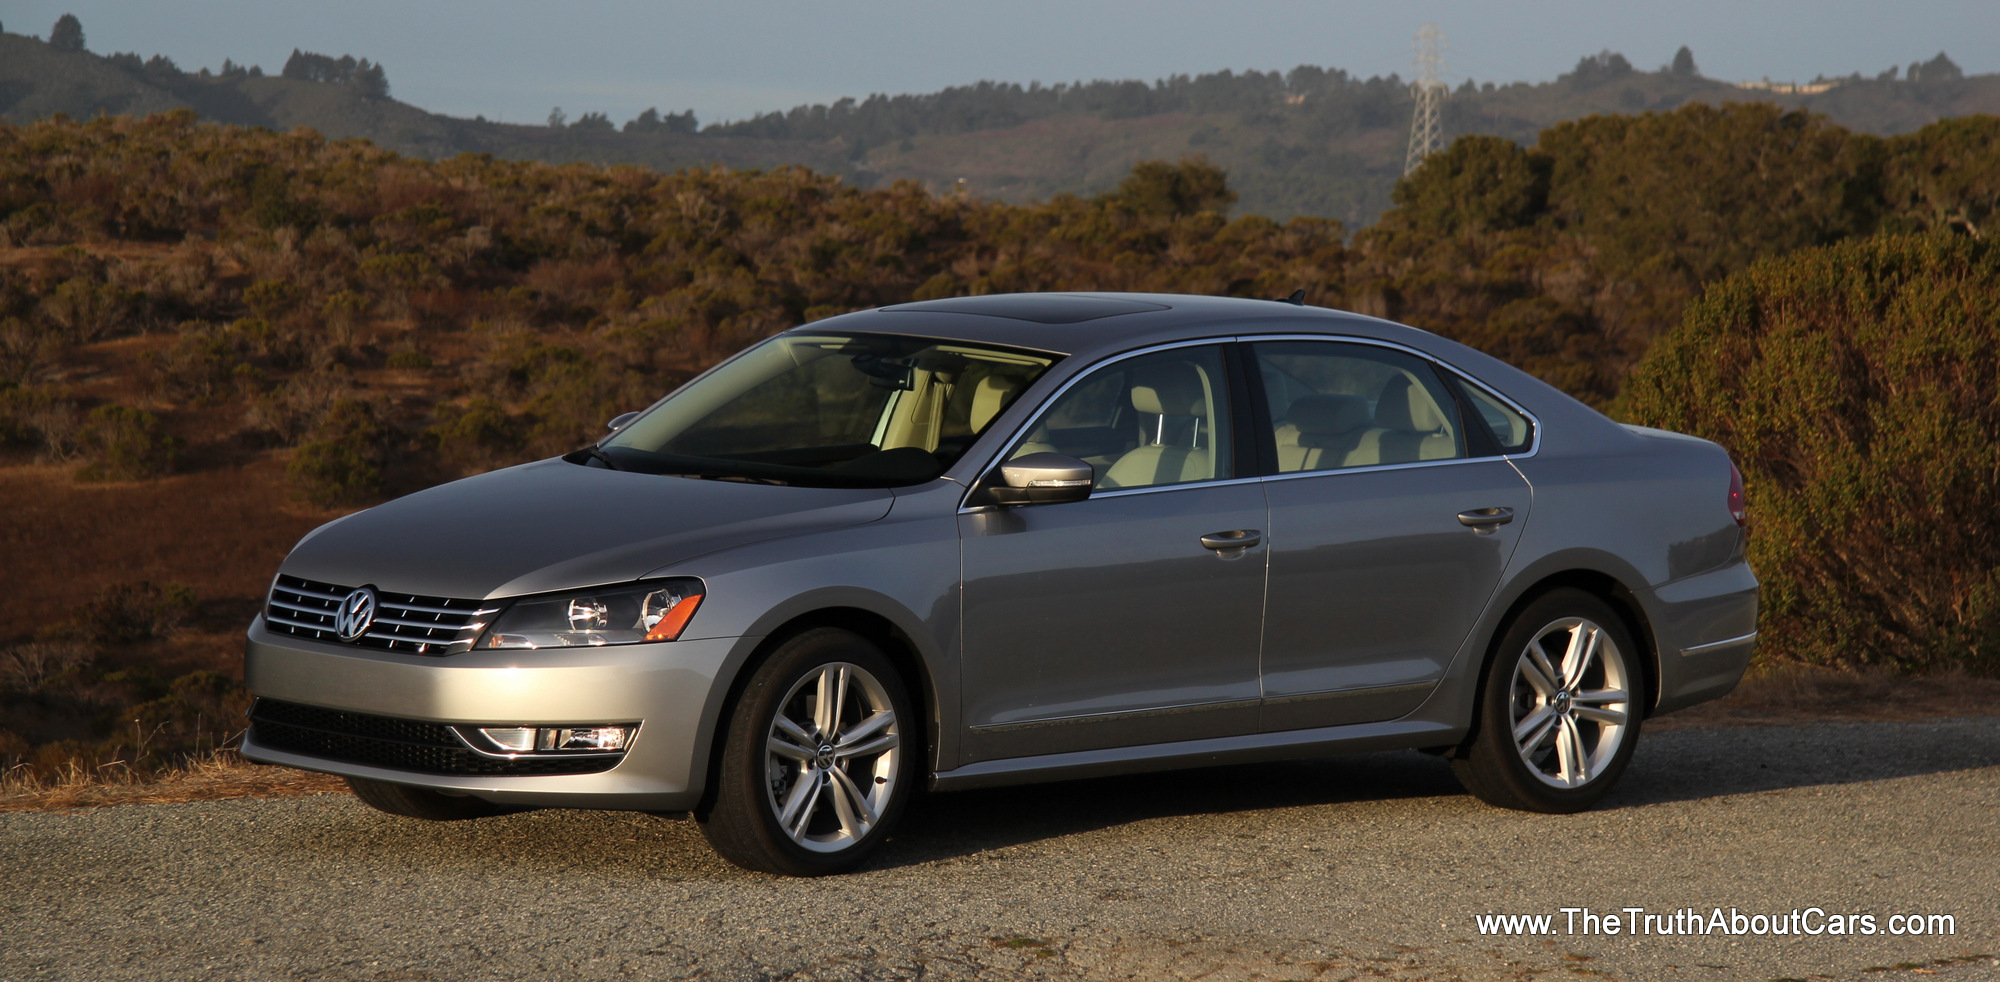 review 2014 volkswagen passat tdi with video the truth about cars. Black Bedroom Furniture Sets. Home Design Ideas